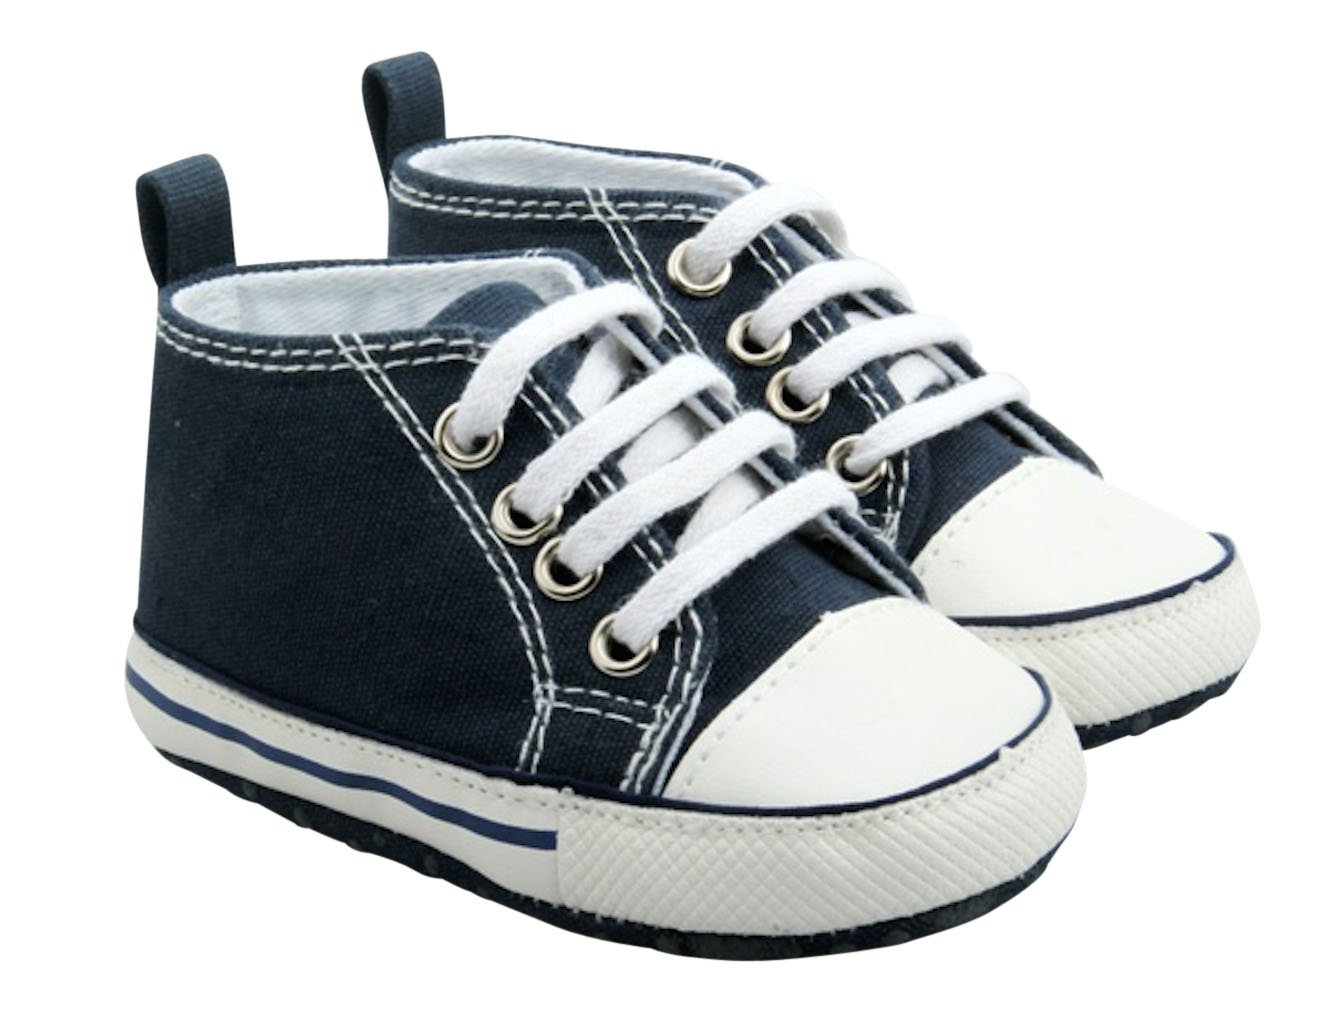 Quality Baby Boy Girl Infant Toddler Soft Sole Sneaker Crib Shoe Dark Blue (6. Unique Baby